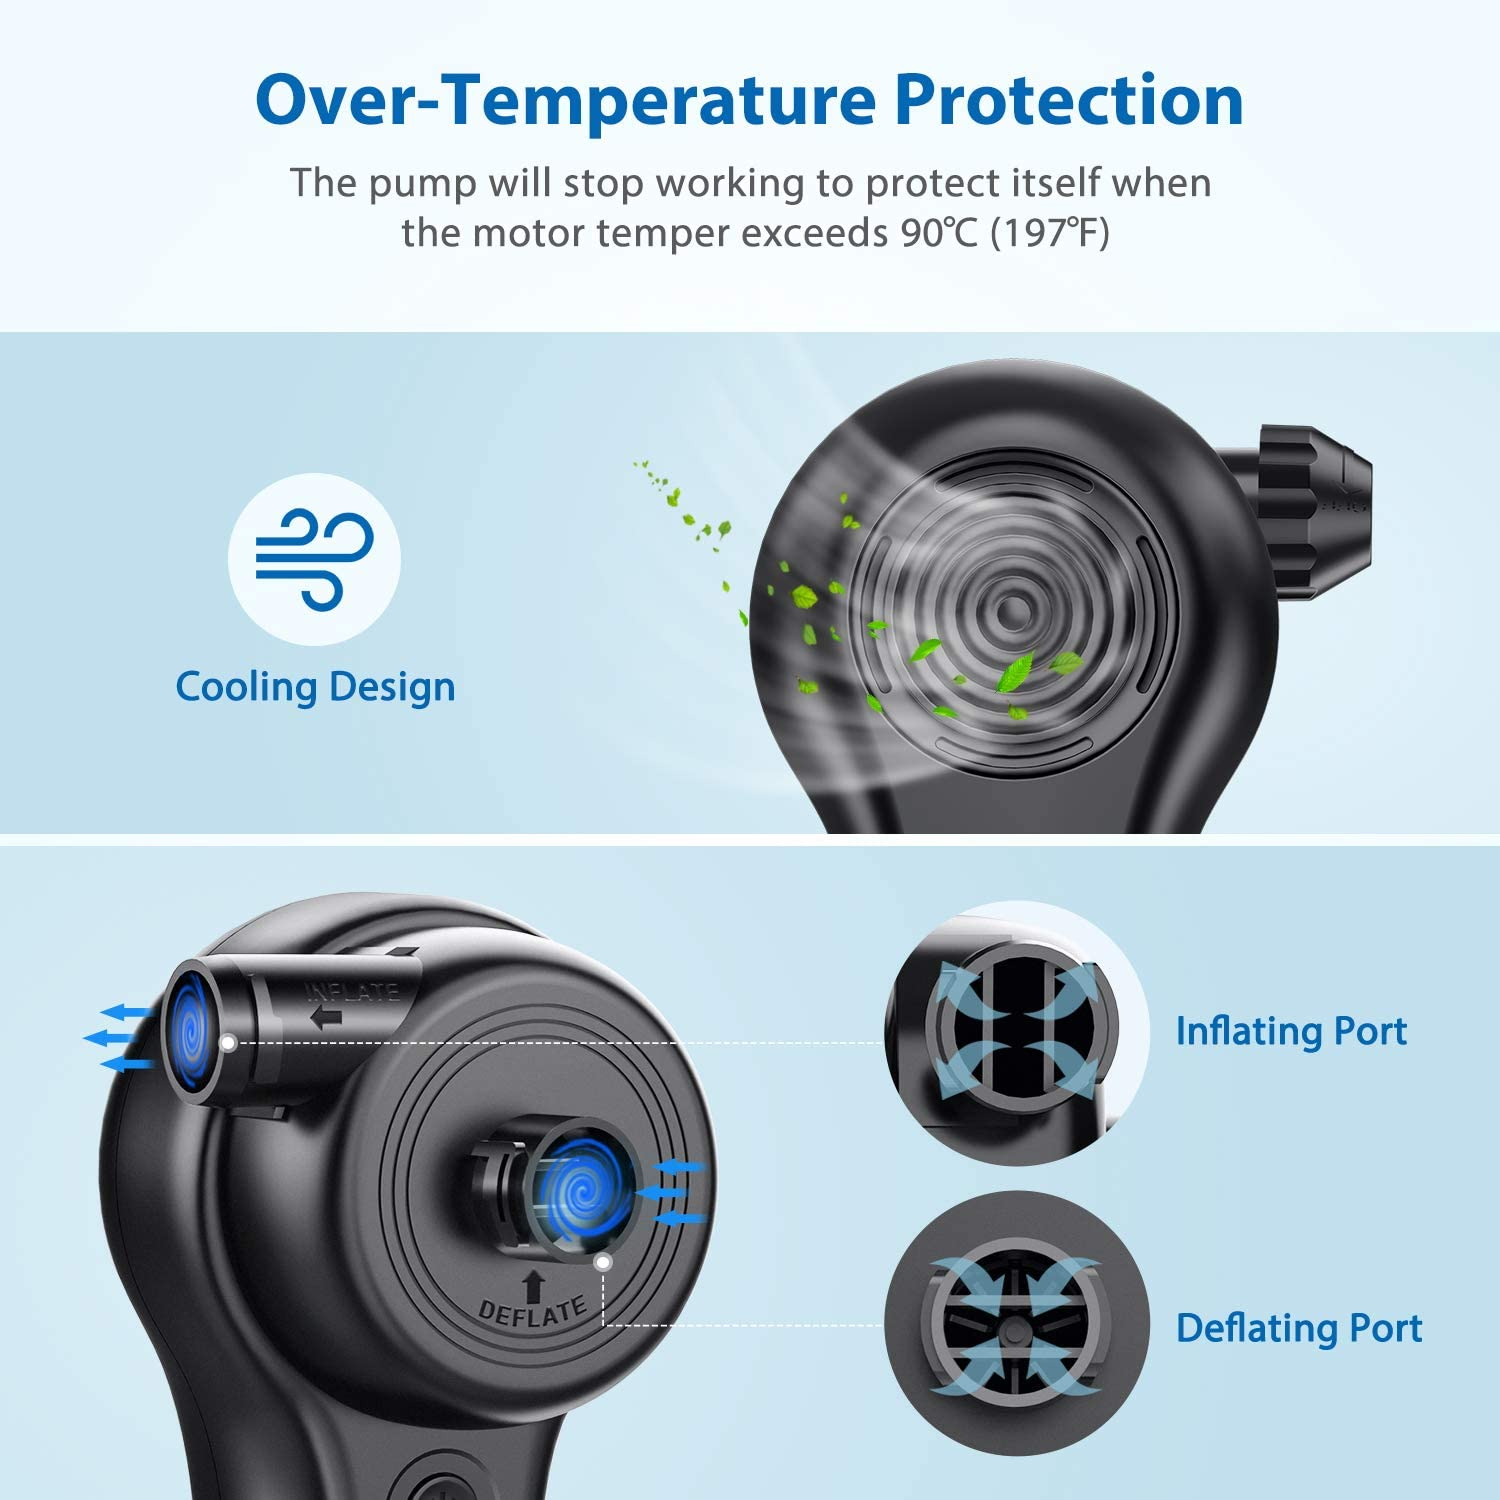 QPAU Electric Air Pump, Rechargeable Portable Air Mattress Pump Quick-Fill Inflator Deflator with 5 Nozzles, Perfect for Camping Inflatable Cushions, Air Mattress Bed, Air Sofa, Pool Inflatables: Sports & Outdoors